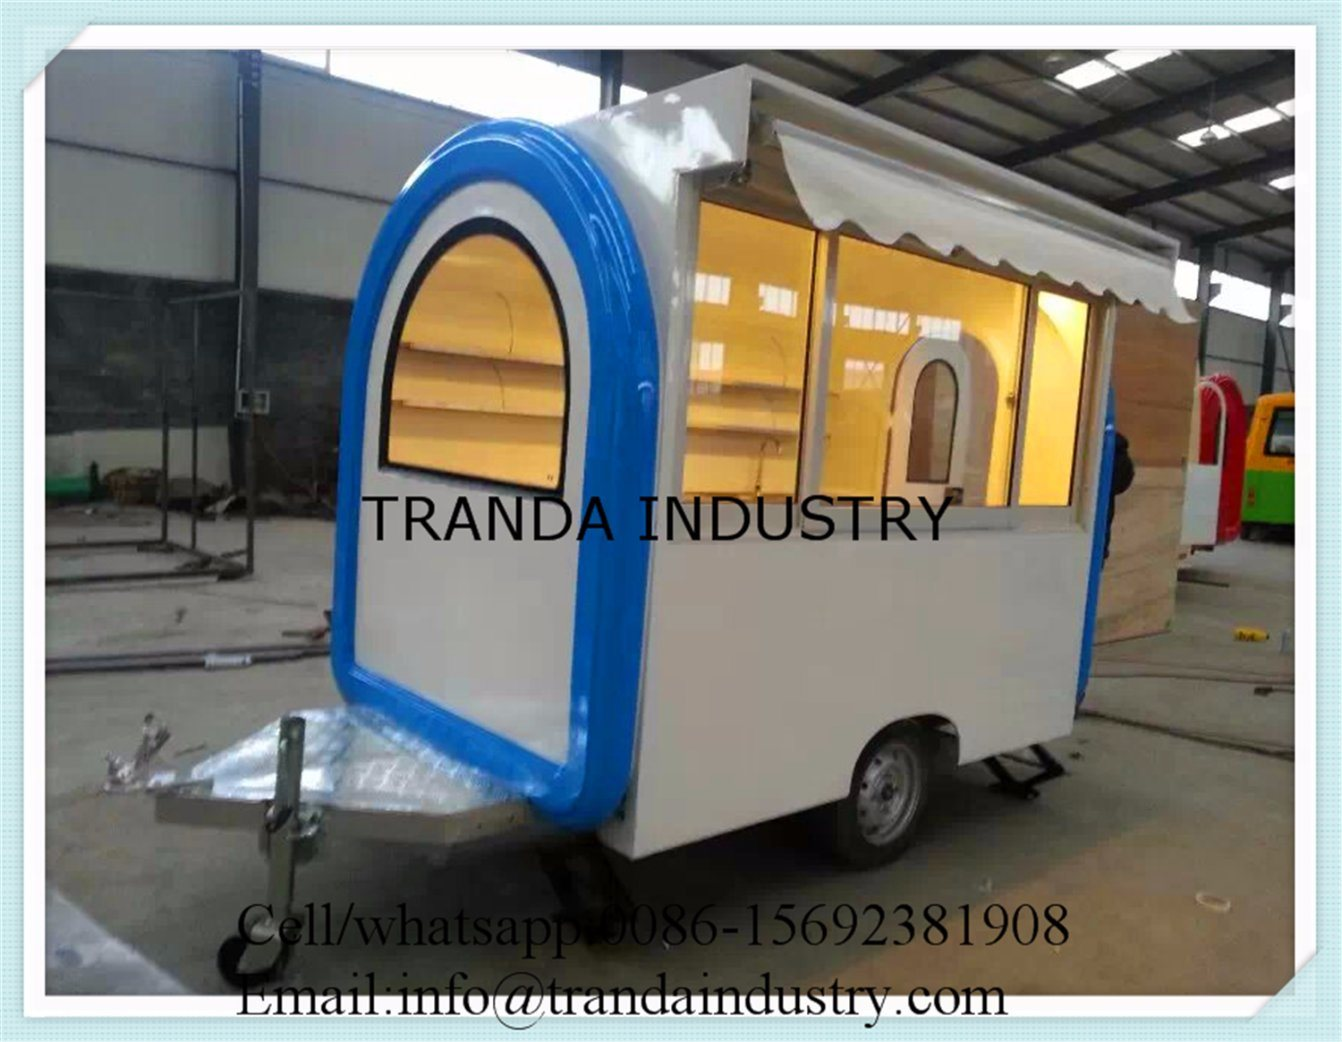 for Salefood Application Commercialvintage Caravan